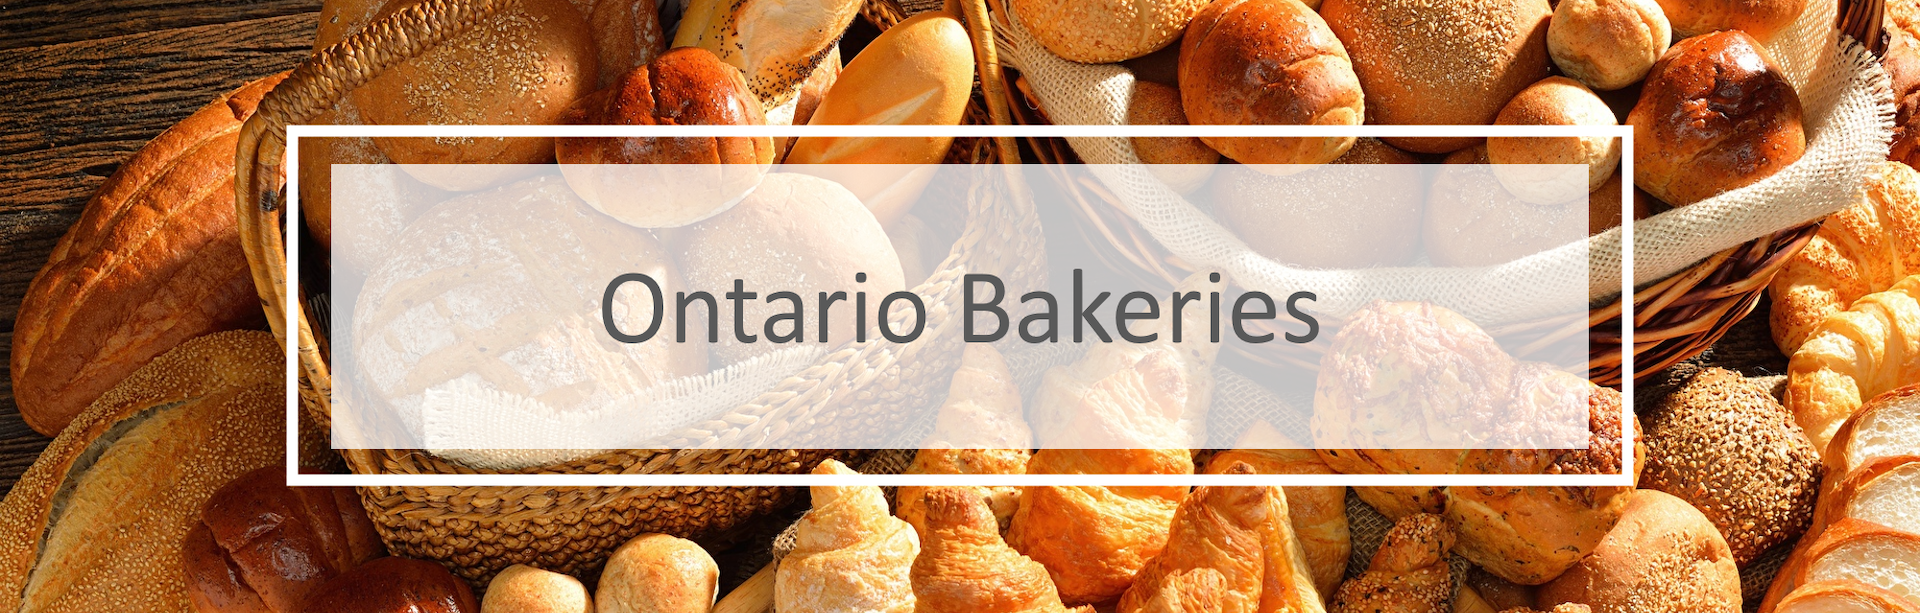 MC Ontario Bakeries